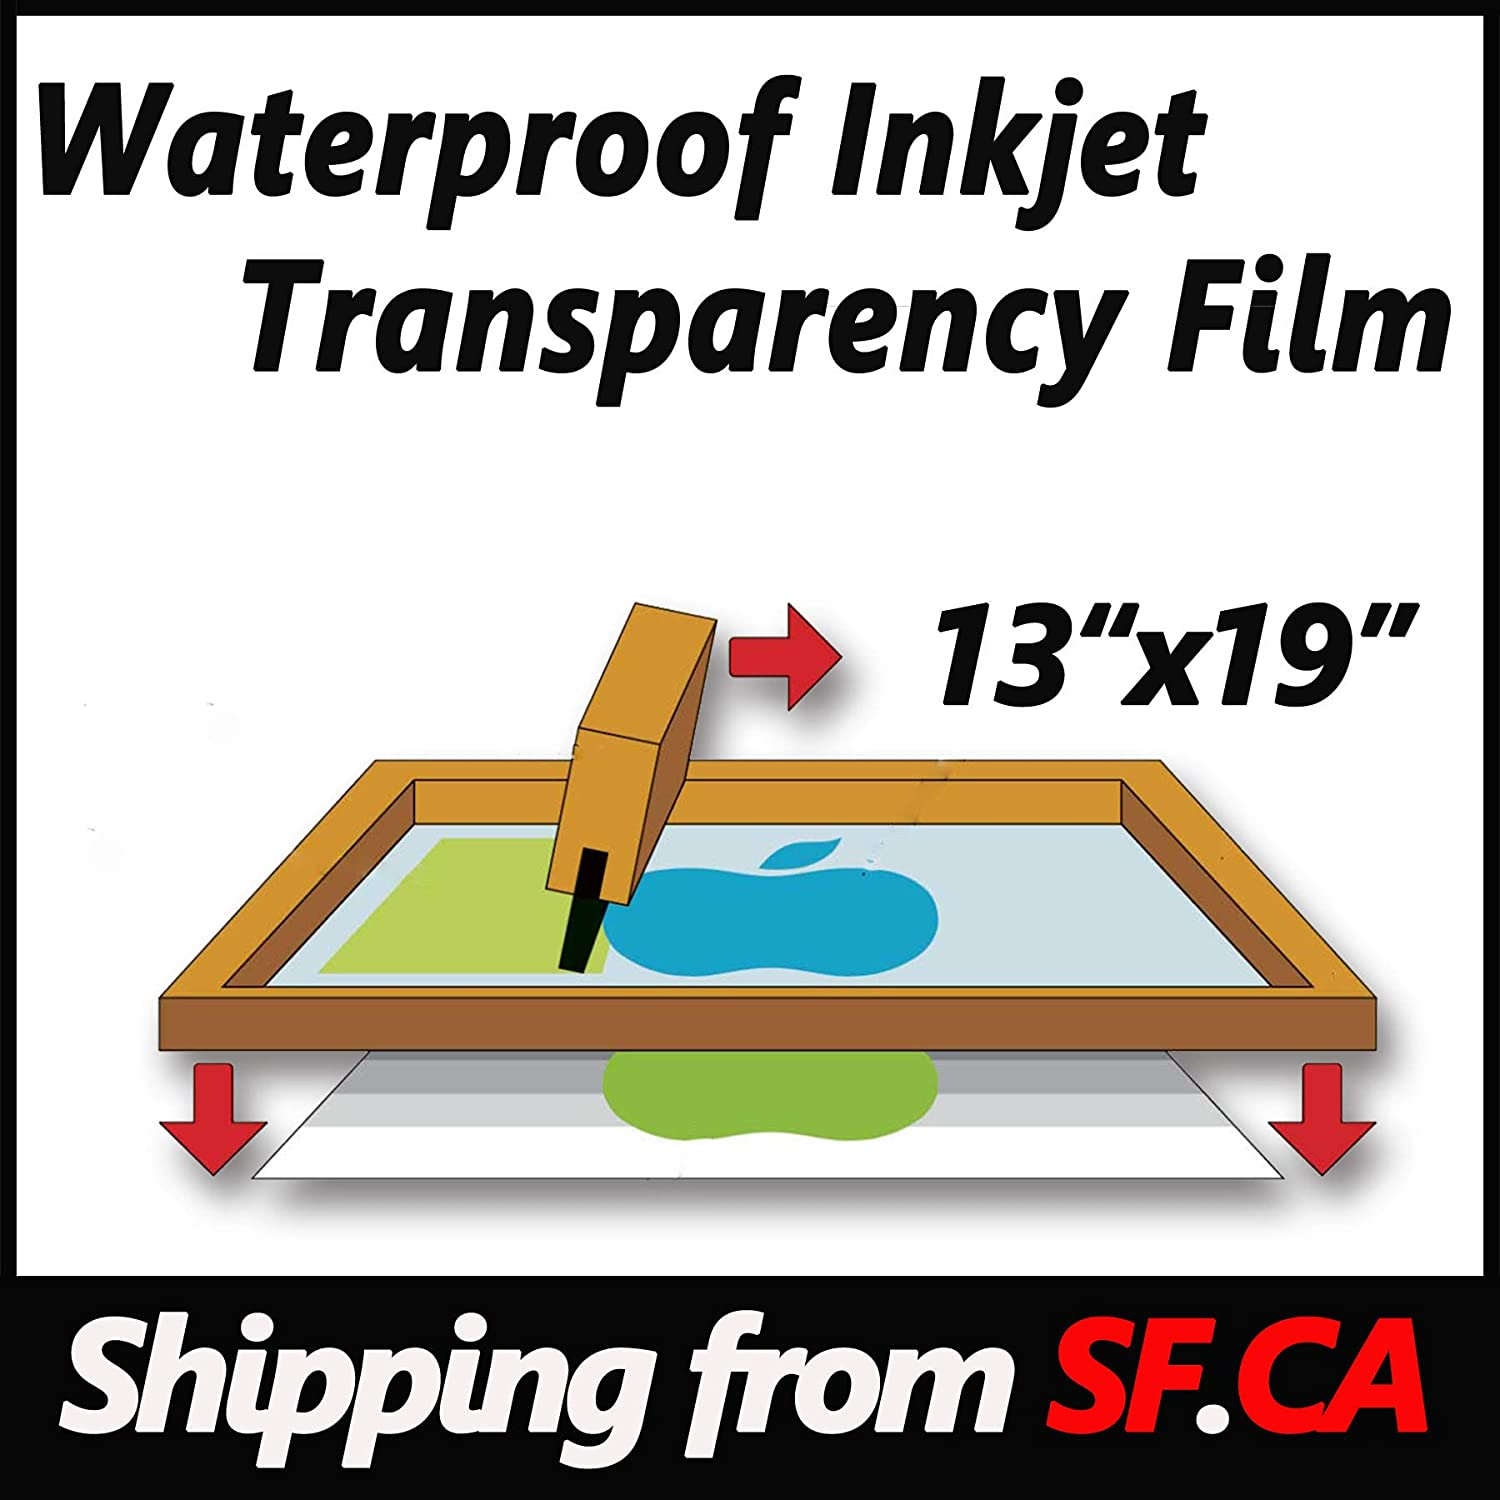 24x100//roll Premium Waterproof Inkjet Instant-Dry Milky-Transparency Positive Silk Screen Printing Film,Great for EPSON,HP,Canon Water-Based Dye and Pigment Inks Printers